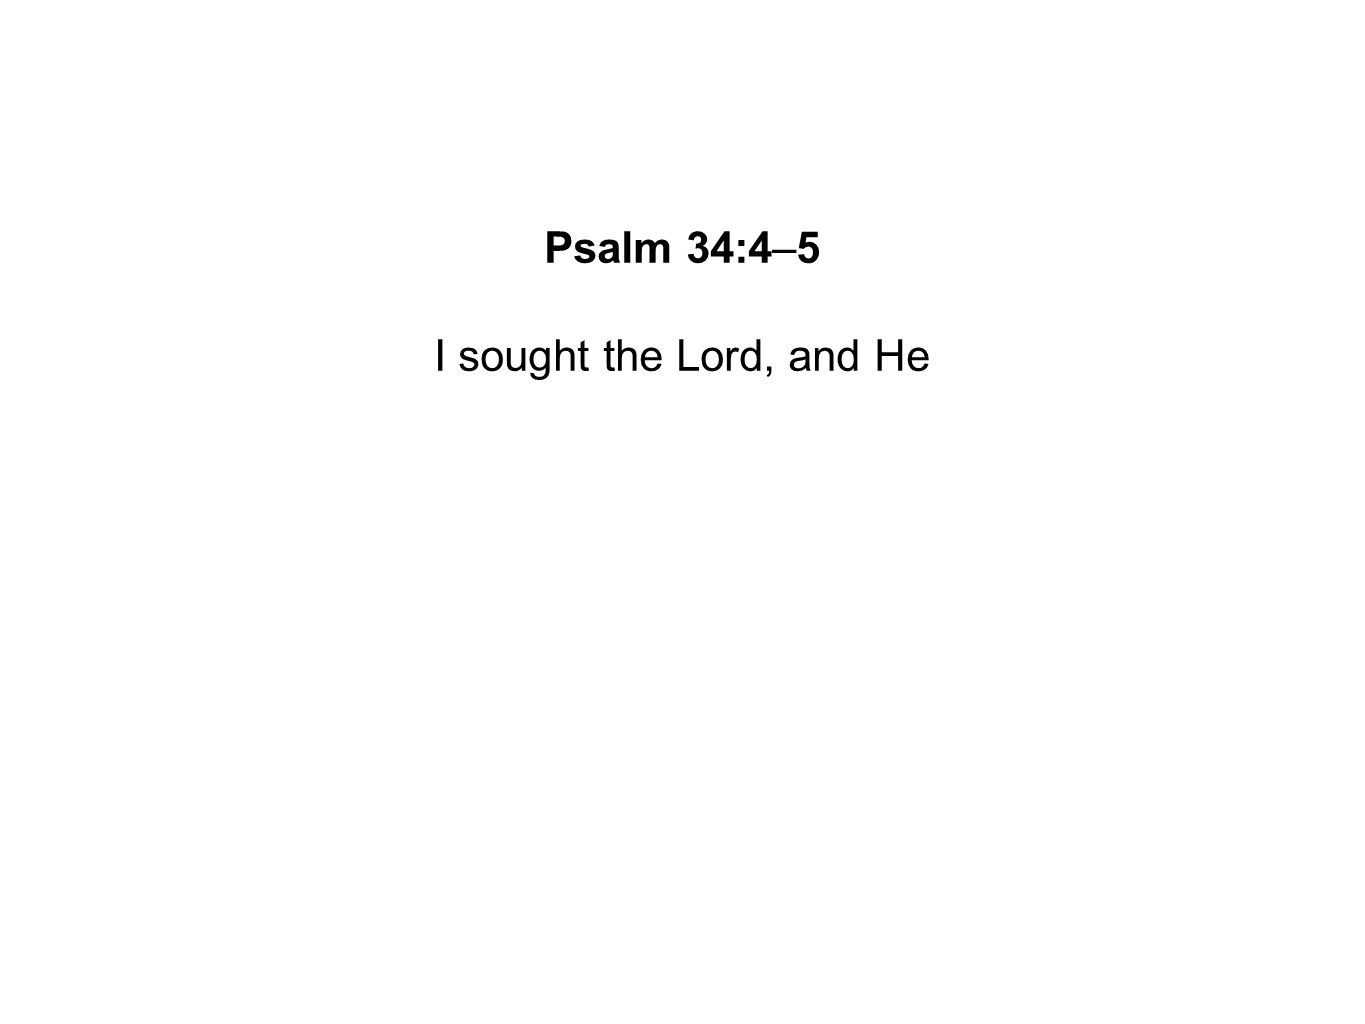 I sought the Lord, and He